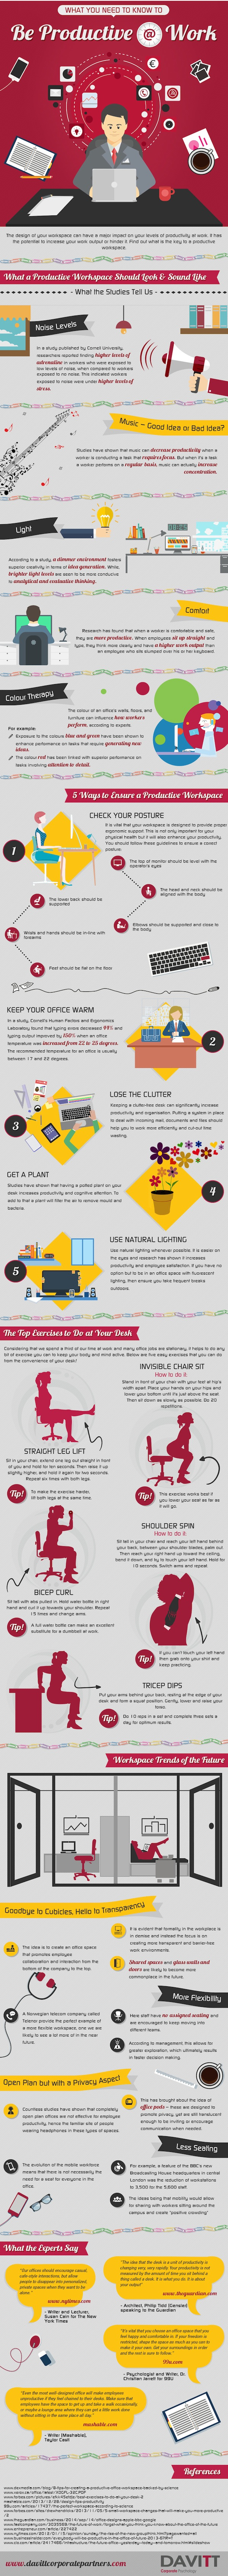 how-to-be-productive-at-work-infographic